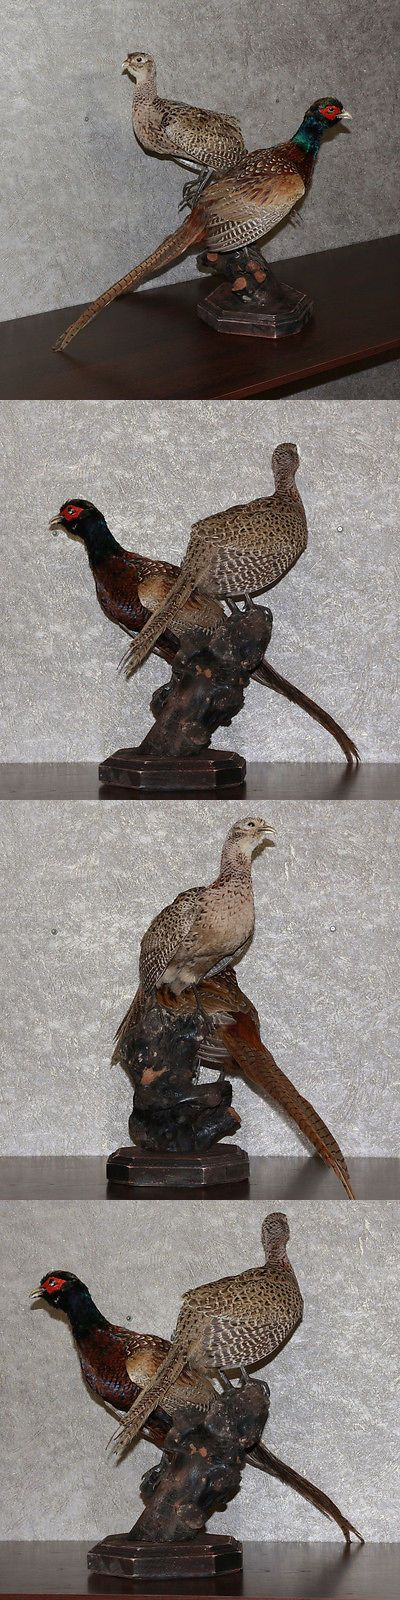 Birds 71123: Ringneck Pheasant - Taxidermy Bird Mount, Stuffed Bird For Sale BUY IT NOW ONLY: $195.0